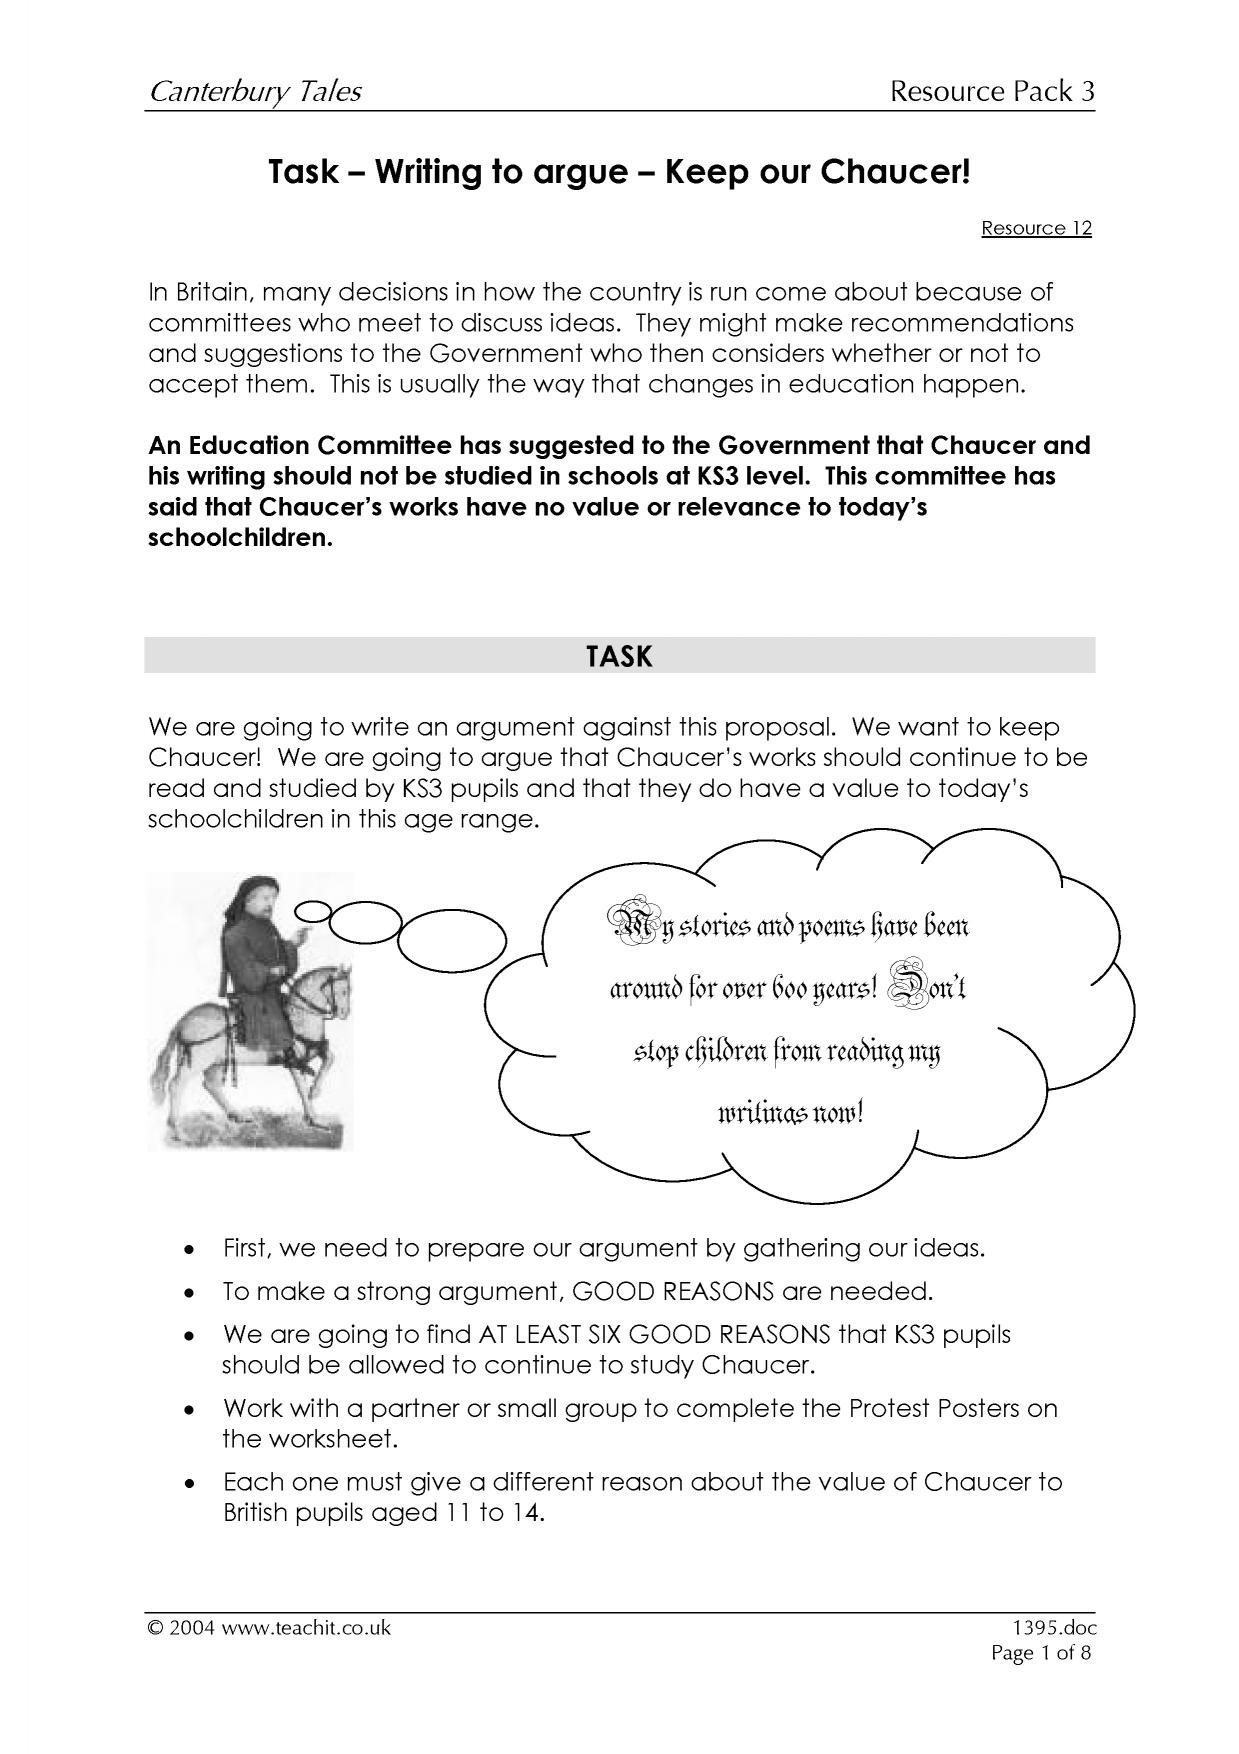 014 Canterbury Tales Essay Topics Best Images20ologue Questions20 Questions For Research Remarkable Paper Defense Good Interview Full